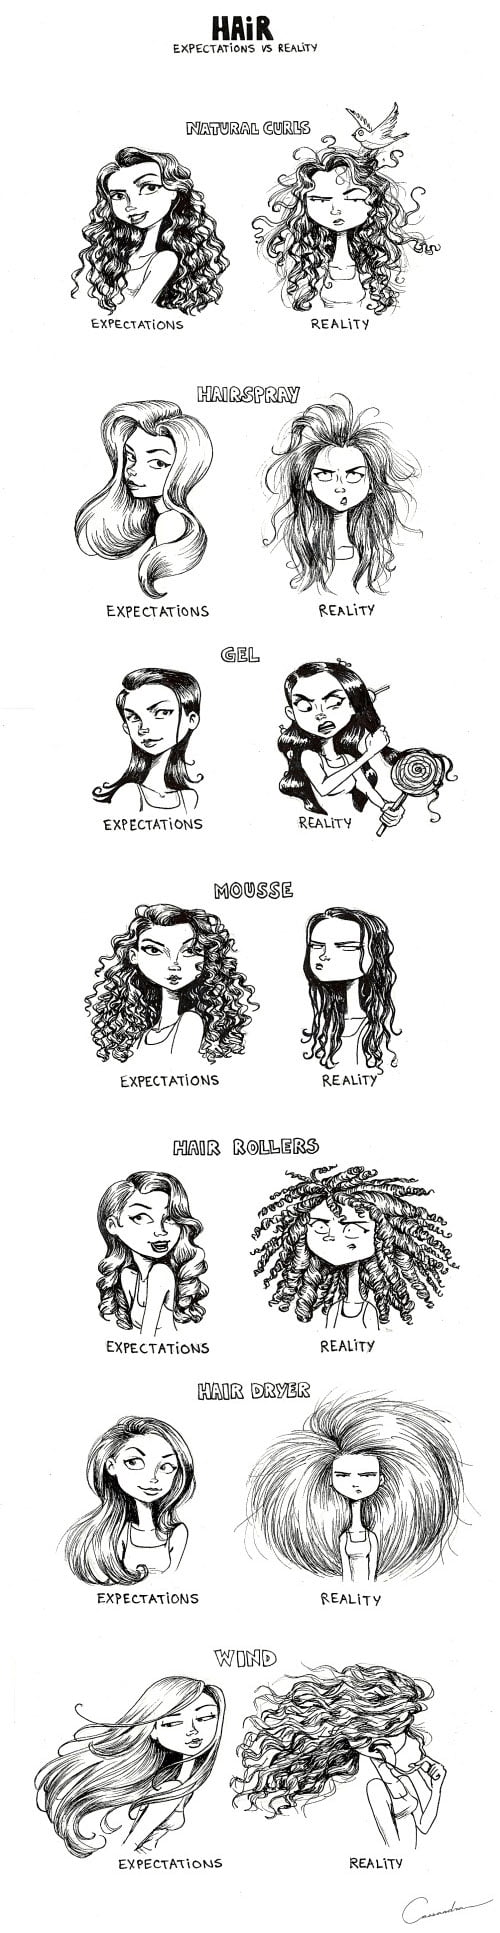 Hair: Expectation vs Reality